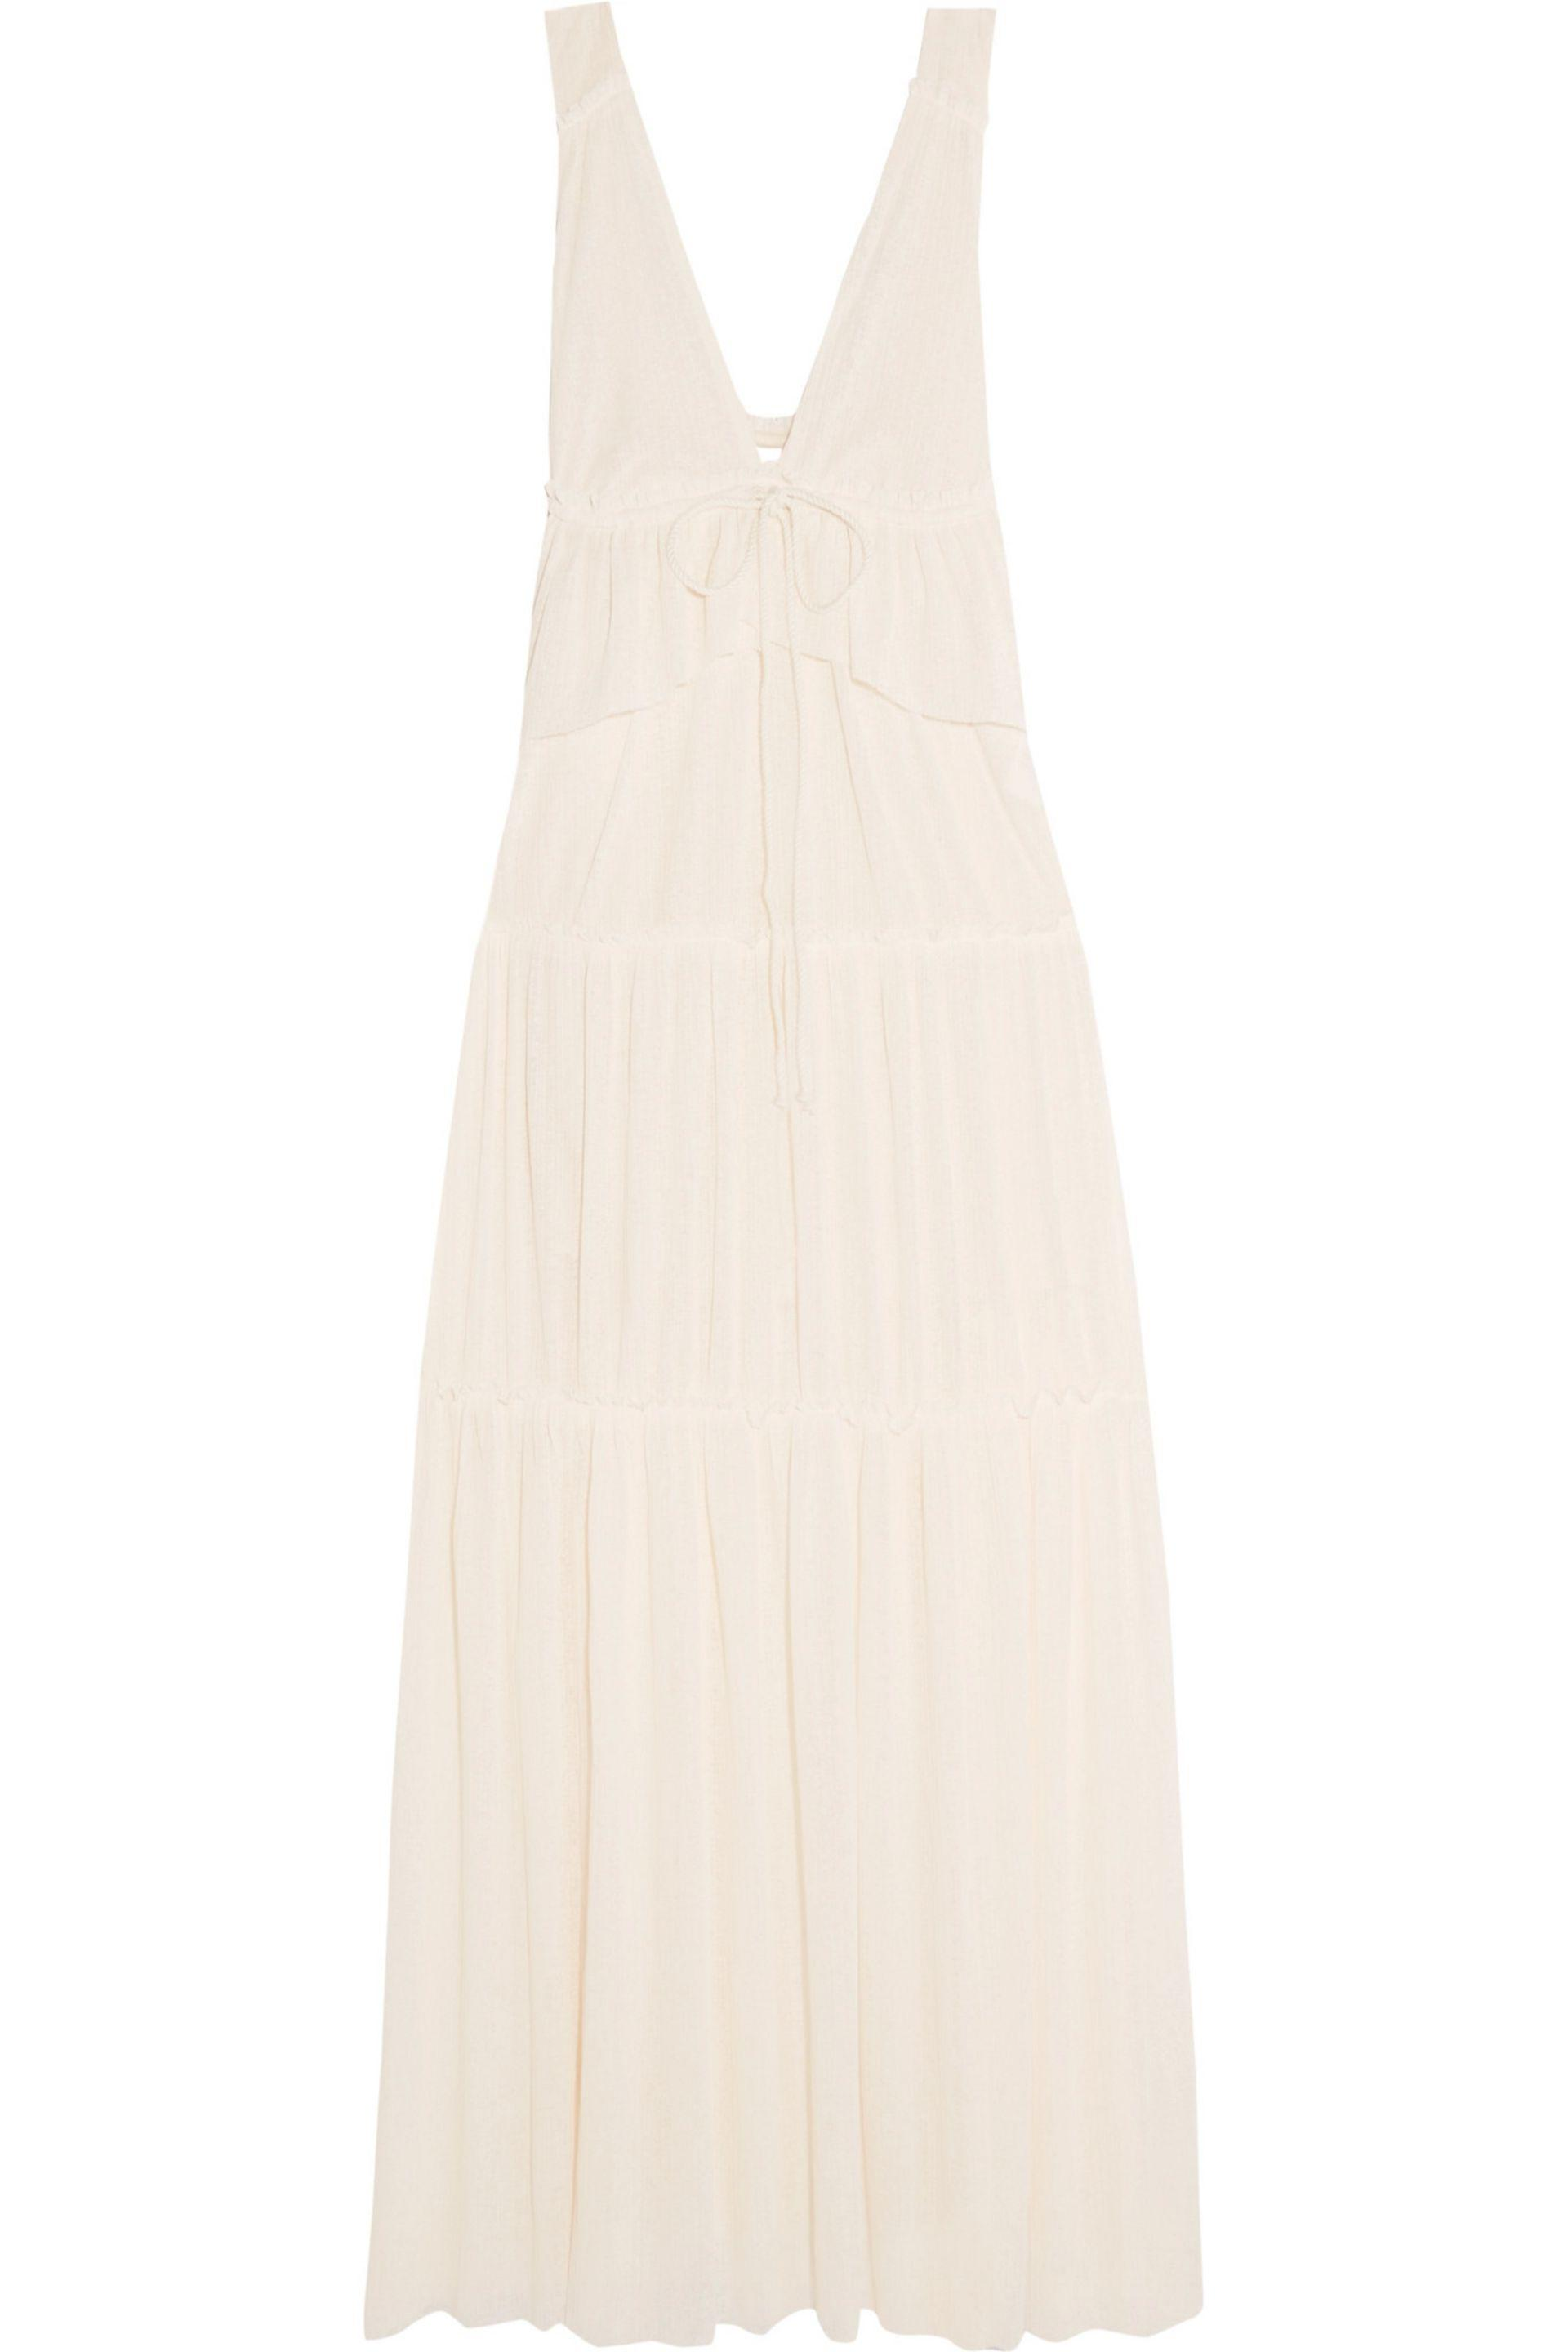 See By Chloé Woman Tiered Voile Maxi Dress Ecru Size L See By Chloé Sale Professional Many Kinds Of Cheap Online SQ1PBgJDZ8